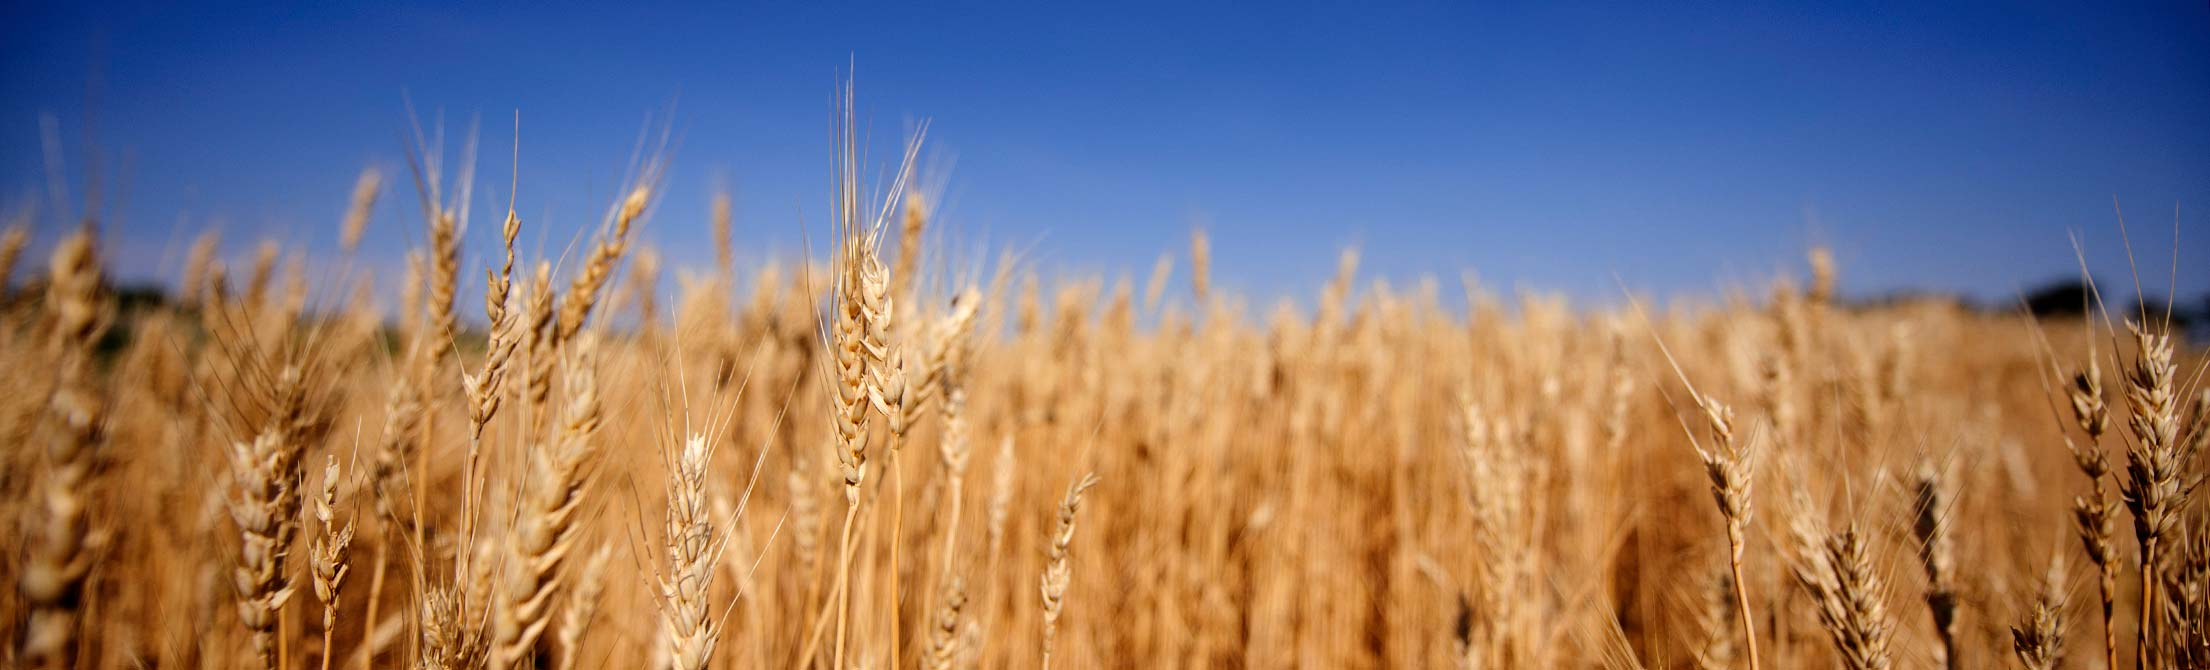 A field of wheat with blue sky behind